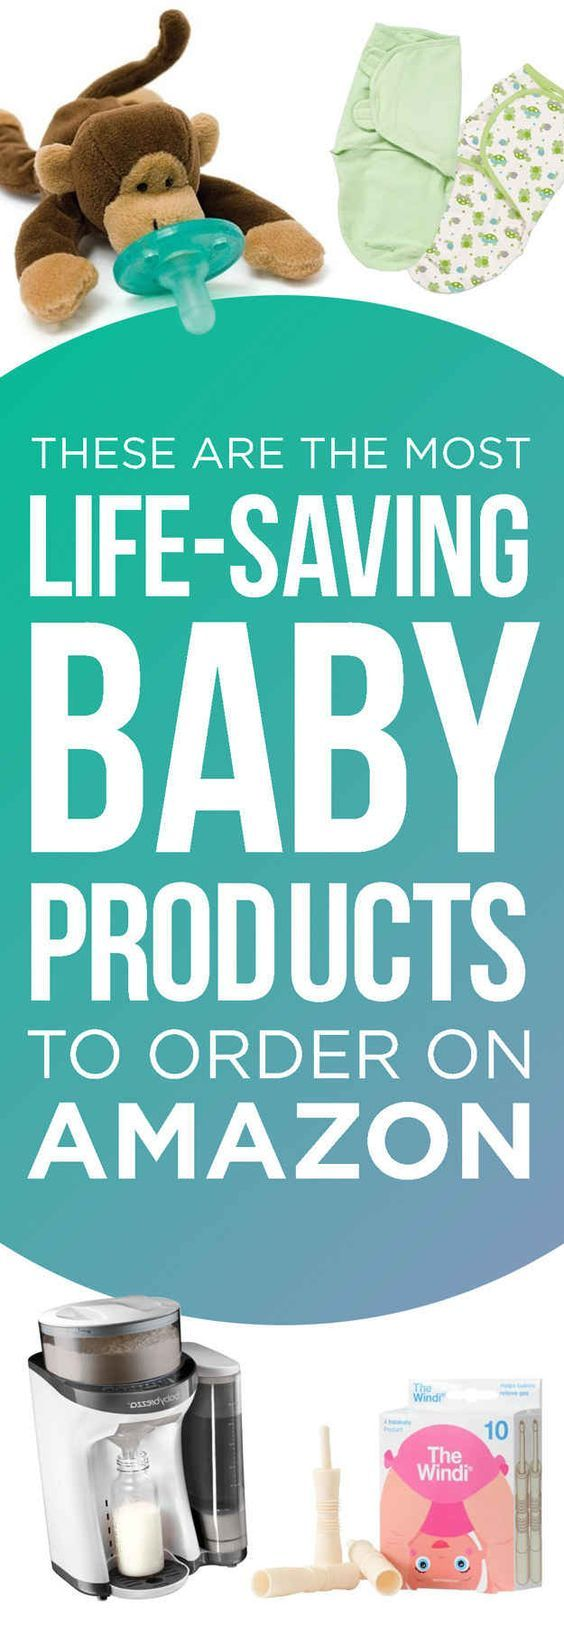 The Most Life-Saving Baby Products To Order On Amazon Remember correctly when I have a little one or for all of those baby showers I keep getting invited to!: